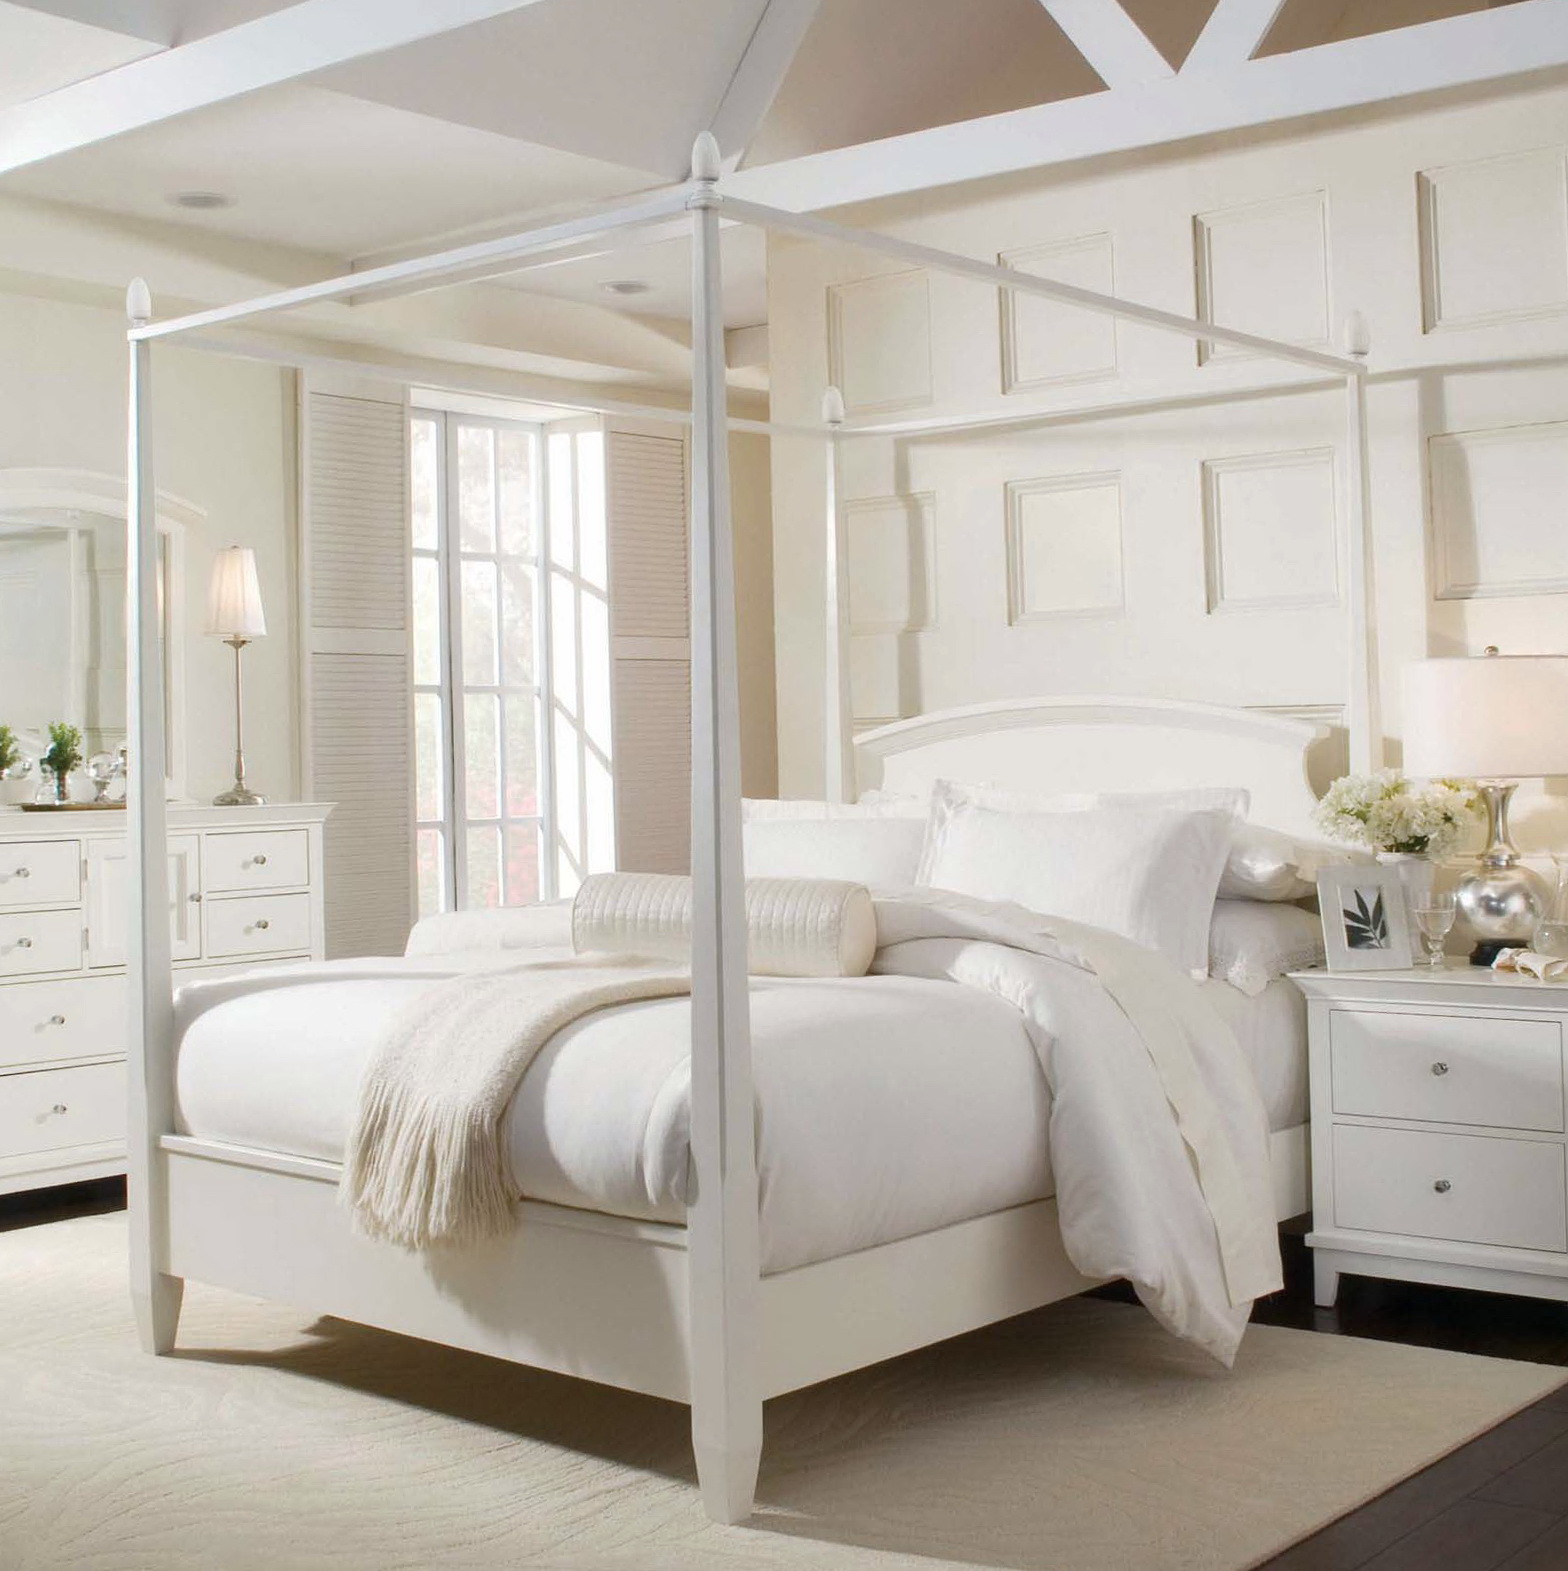 King Size Canopy Bed Cutains